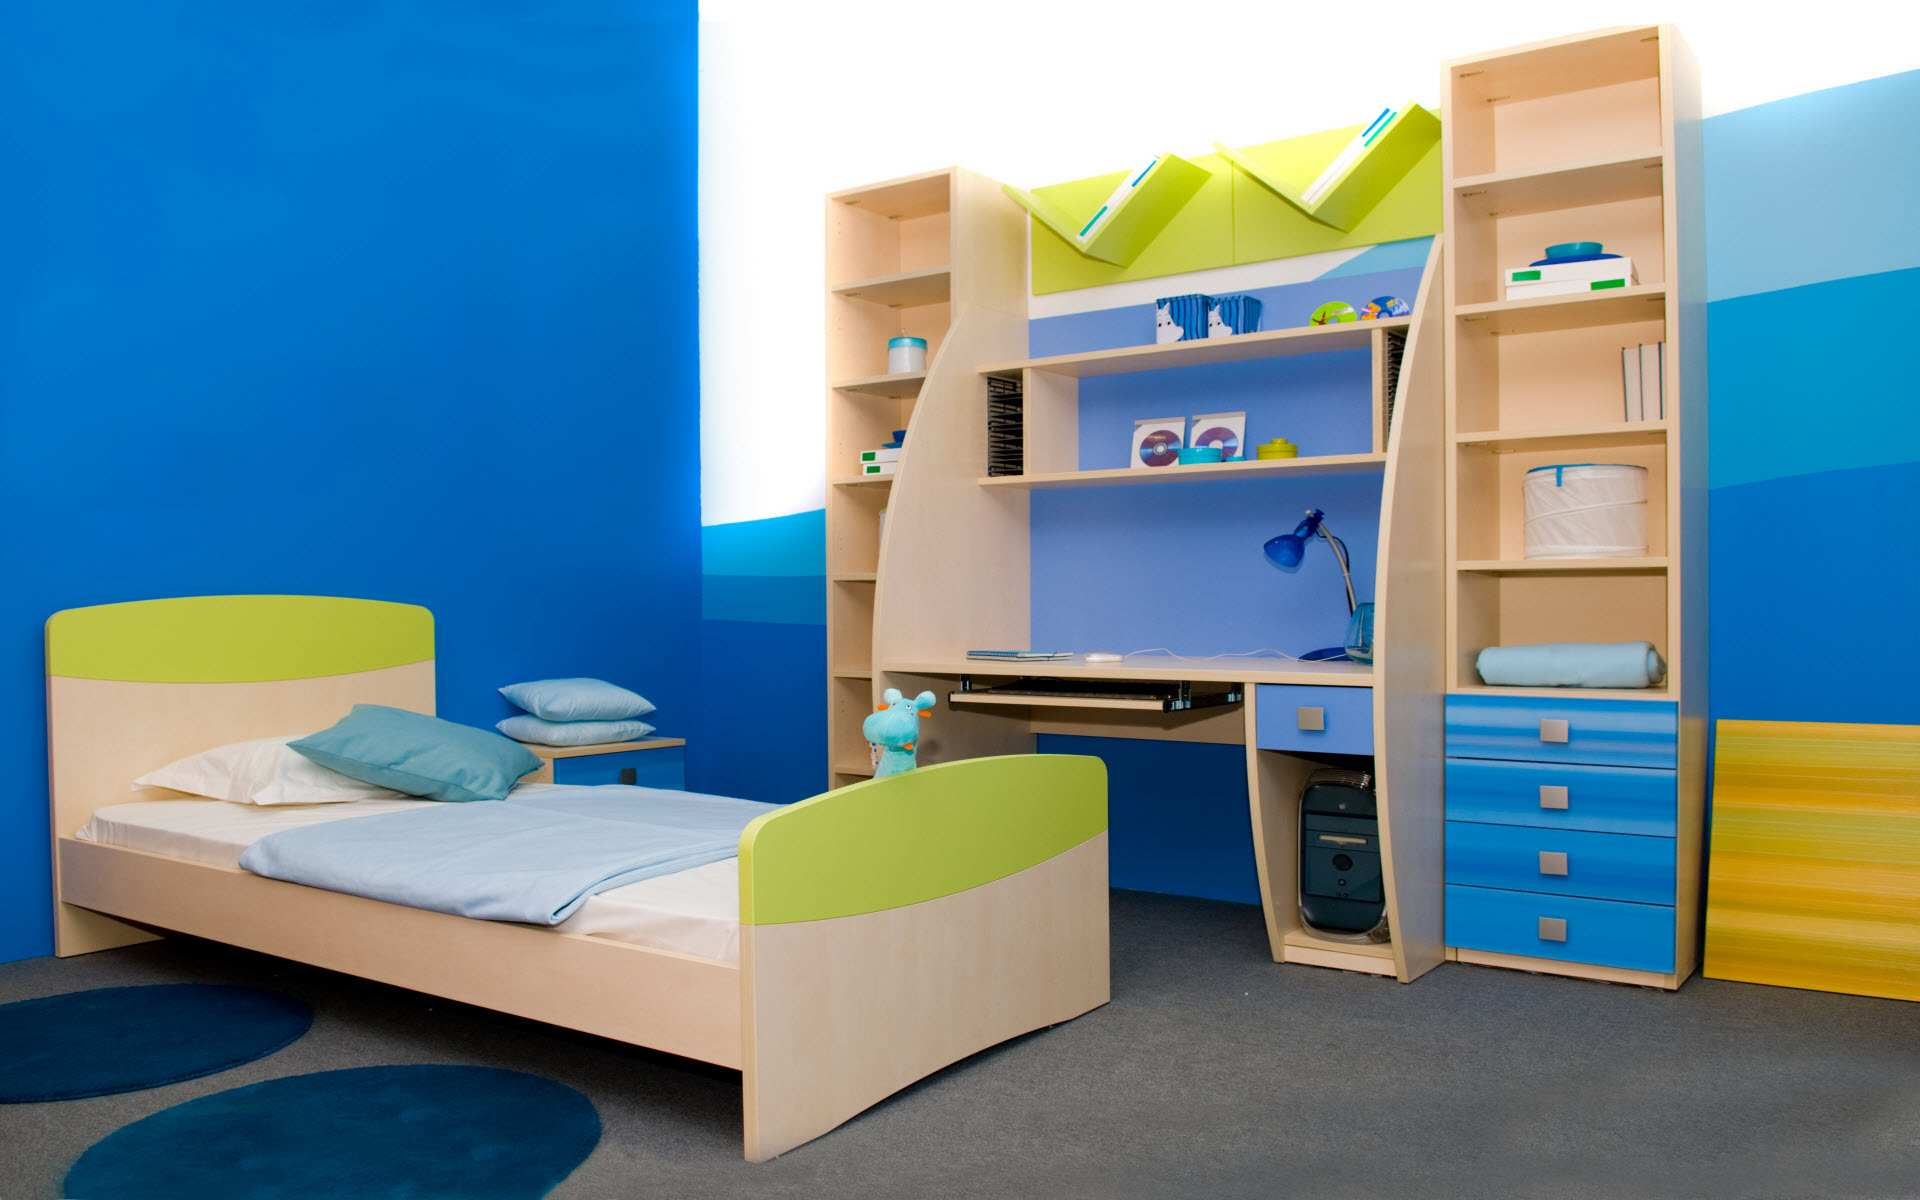 Cool small kids bedroom decorating ideas for boy photos 06 for Cool kids rooms decorating ideas